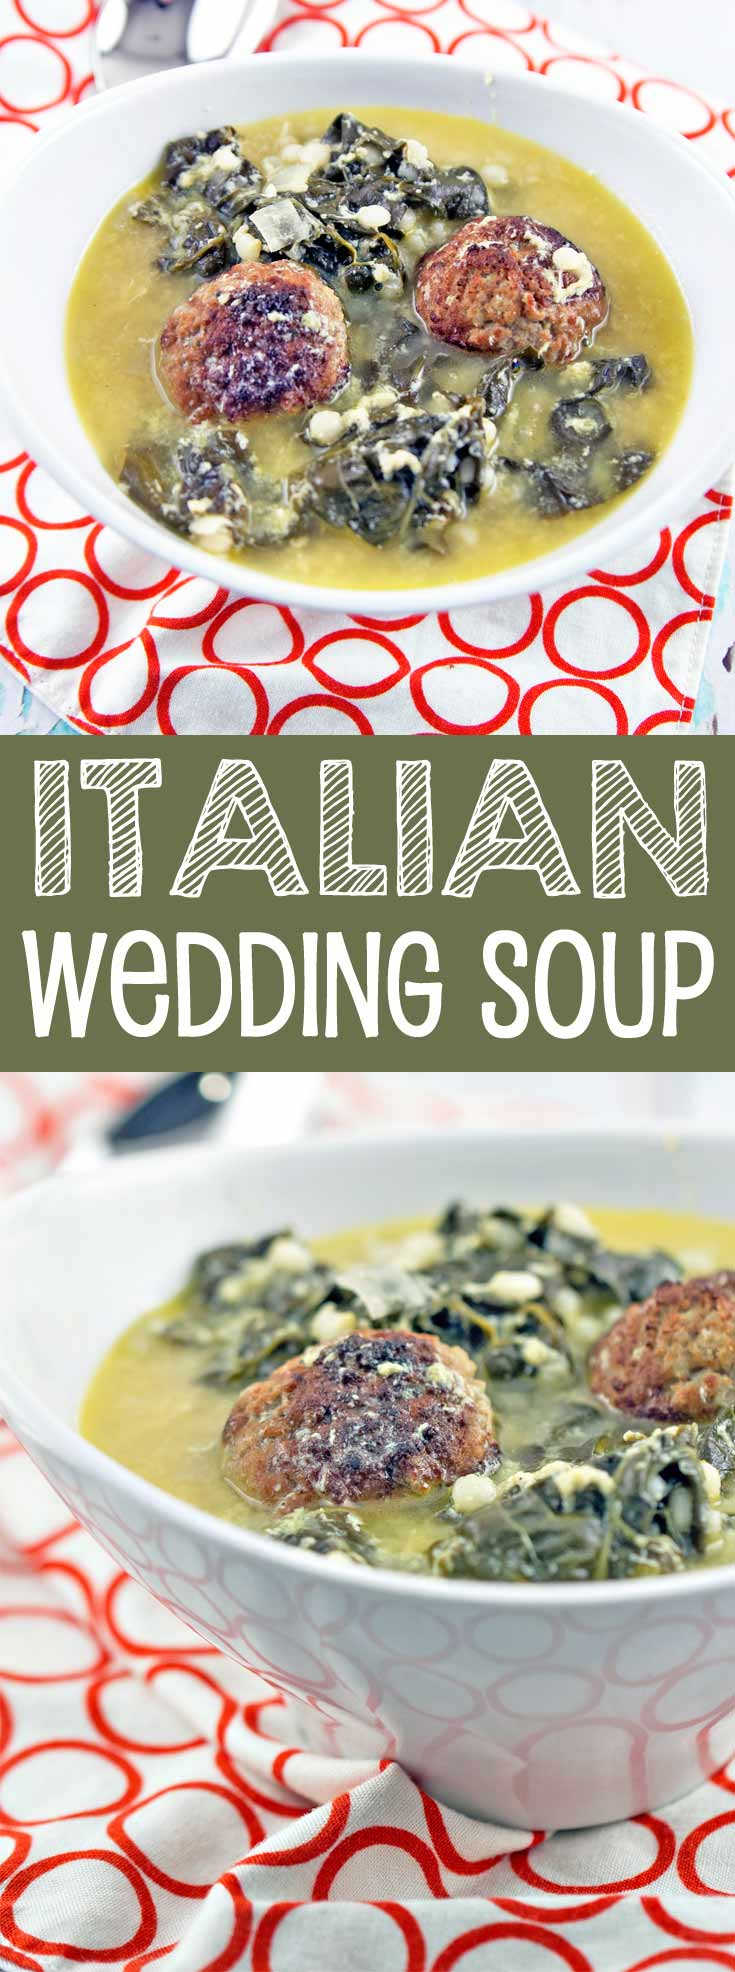 Italian Wedding Soup: a delicious, comforting favorite, made with things already found in your freezer and pantry. {Bunsen Burner Bakery}